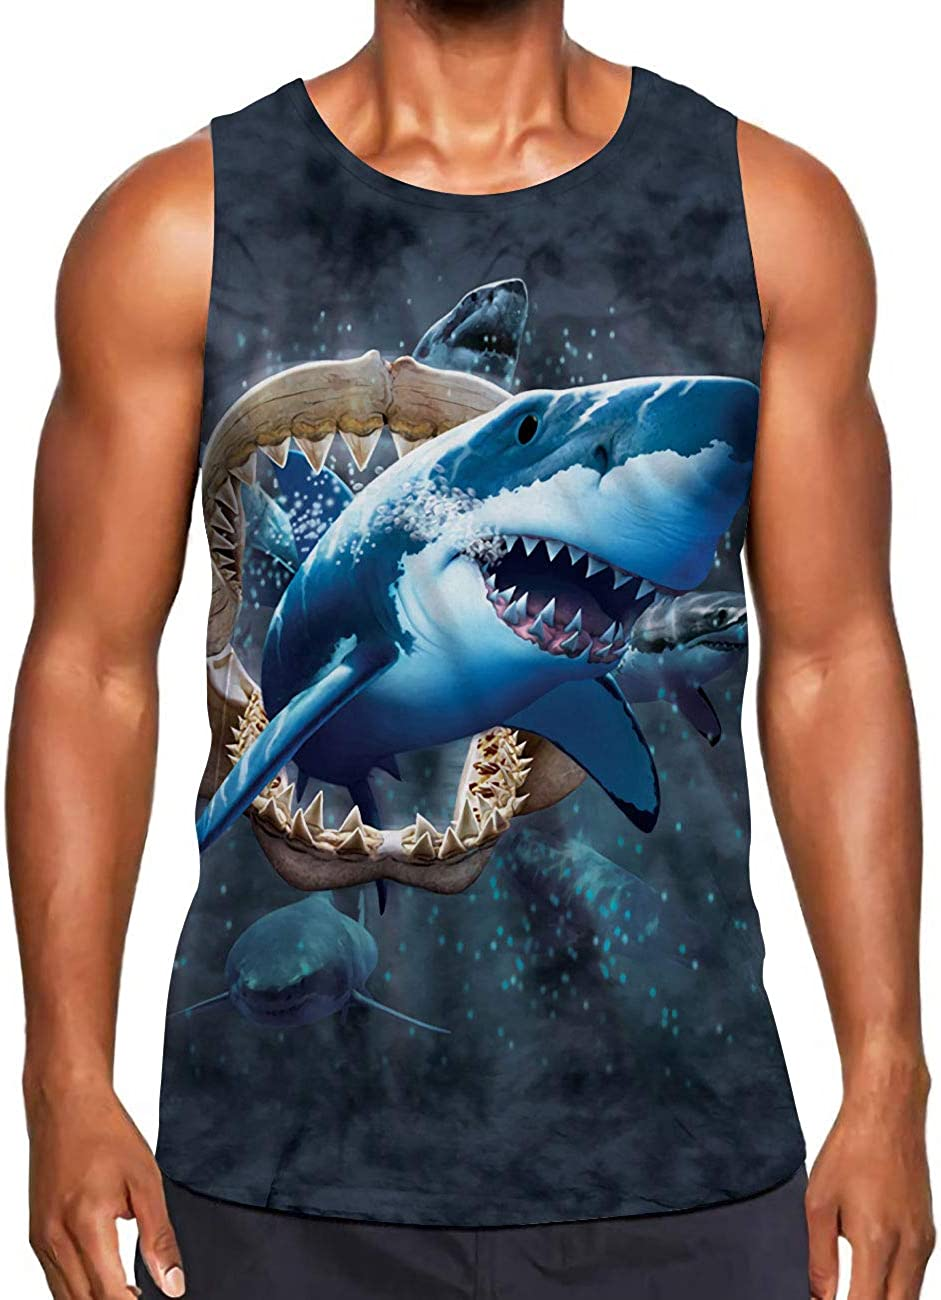 Alistyle Mens Summer Sleeveless 3D Print Tank Tops Casual Workout Graphic Holiday Vest Shirts